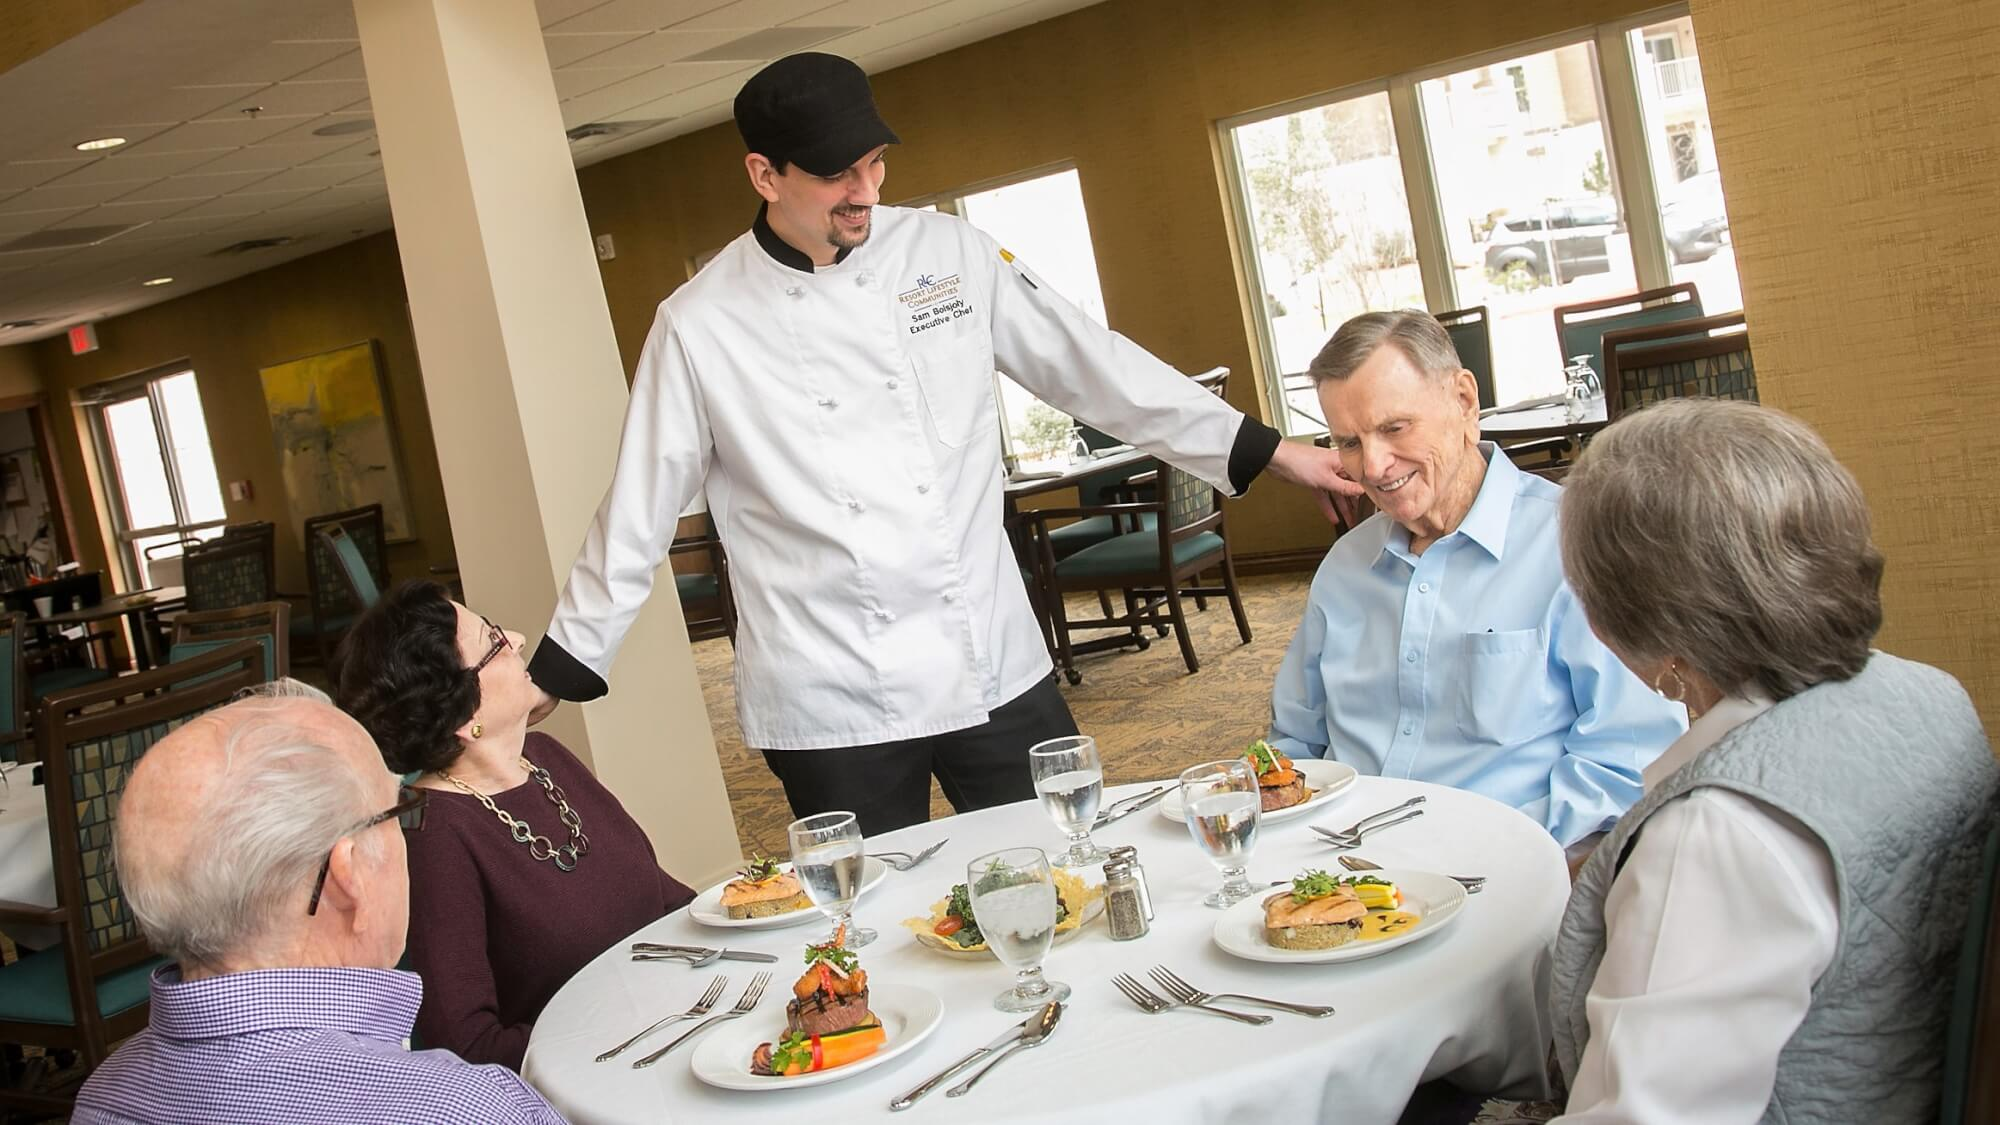 Enjoy an elegant sit-down dinner with courteous wait staff and table-side service.